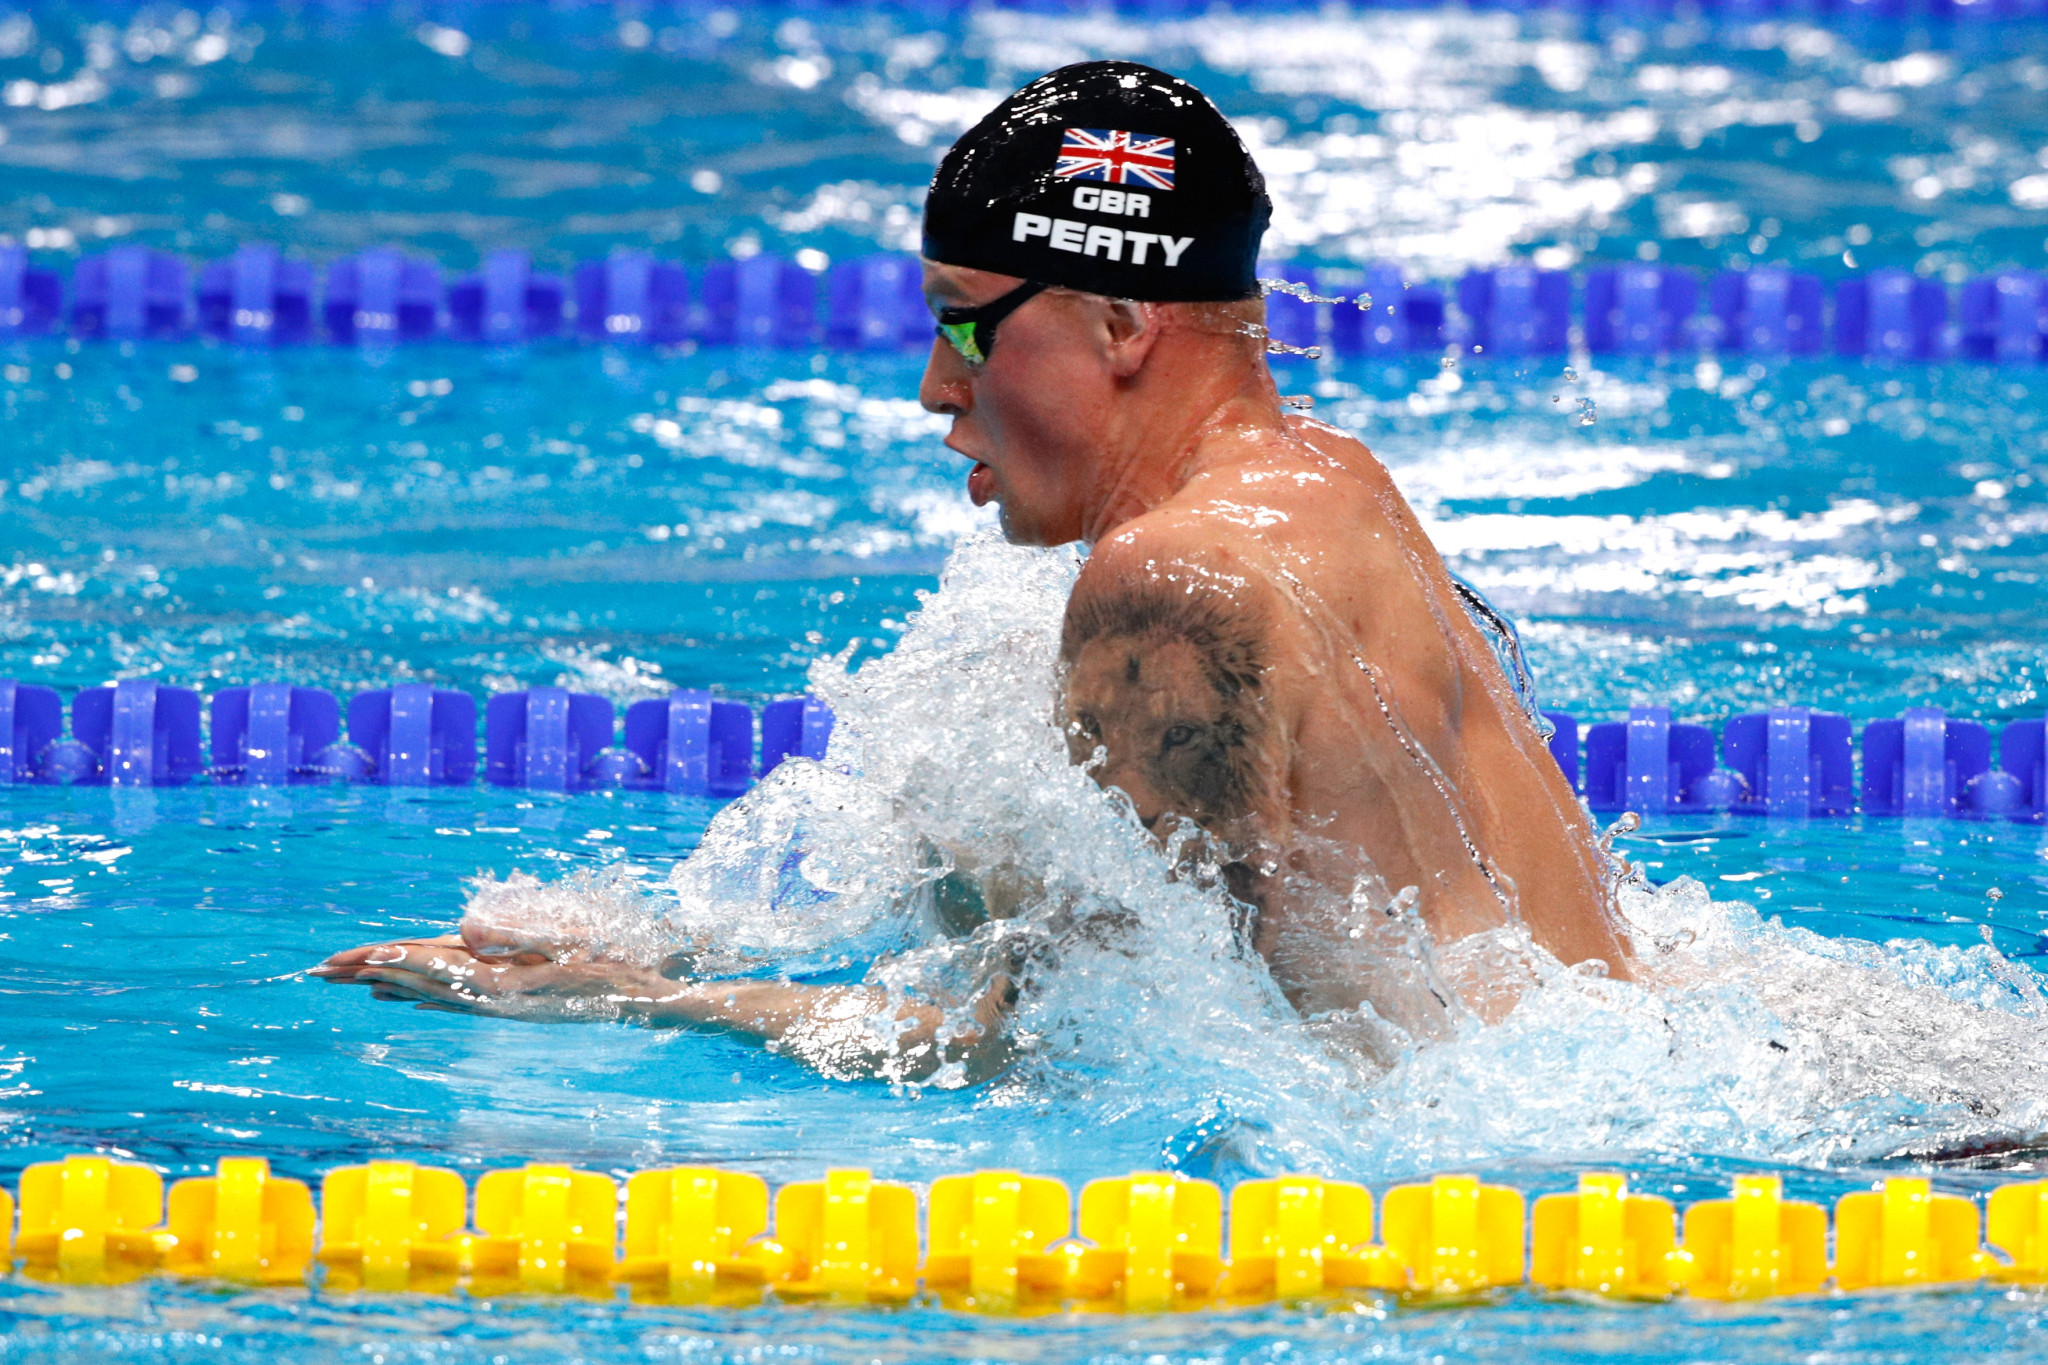 Olympic champion and world record holder Adam Peaty is among the athletes already confirmed for the Games ©Getty Images